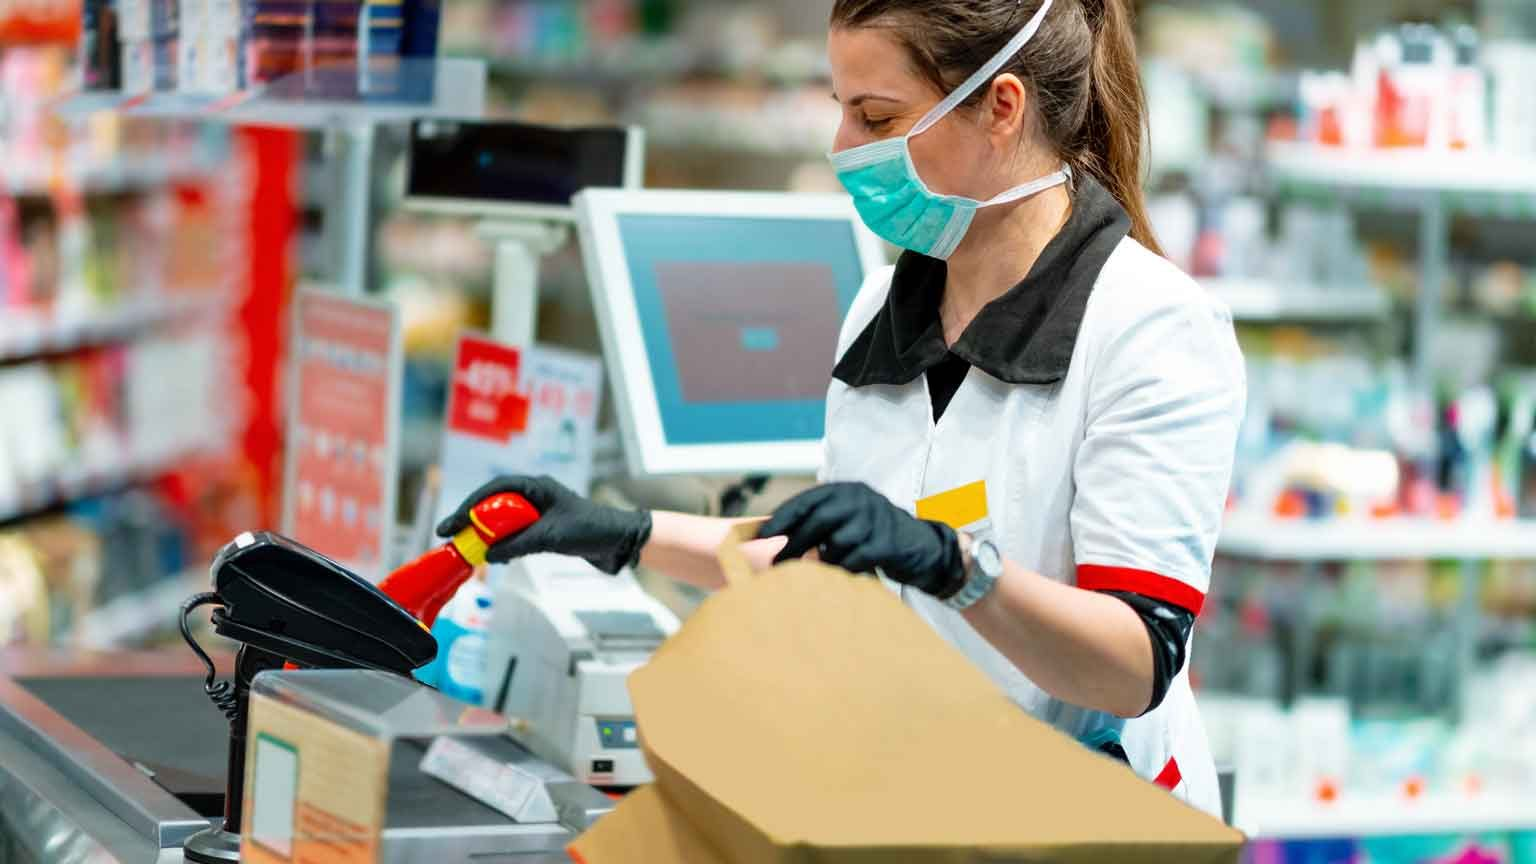 Woman cashier in mask and gloves working at the register